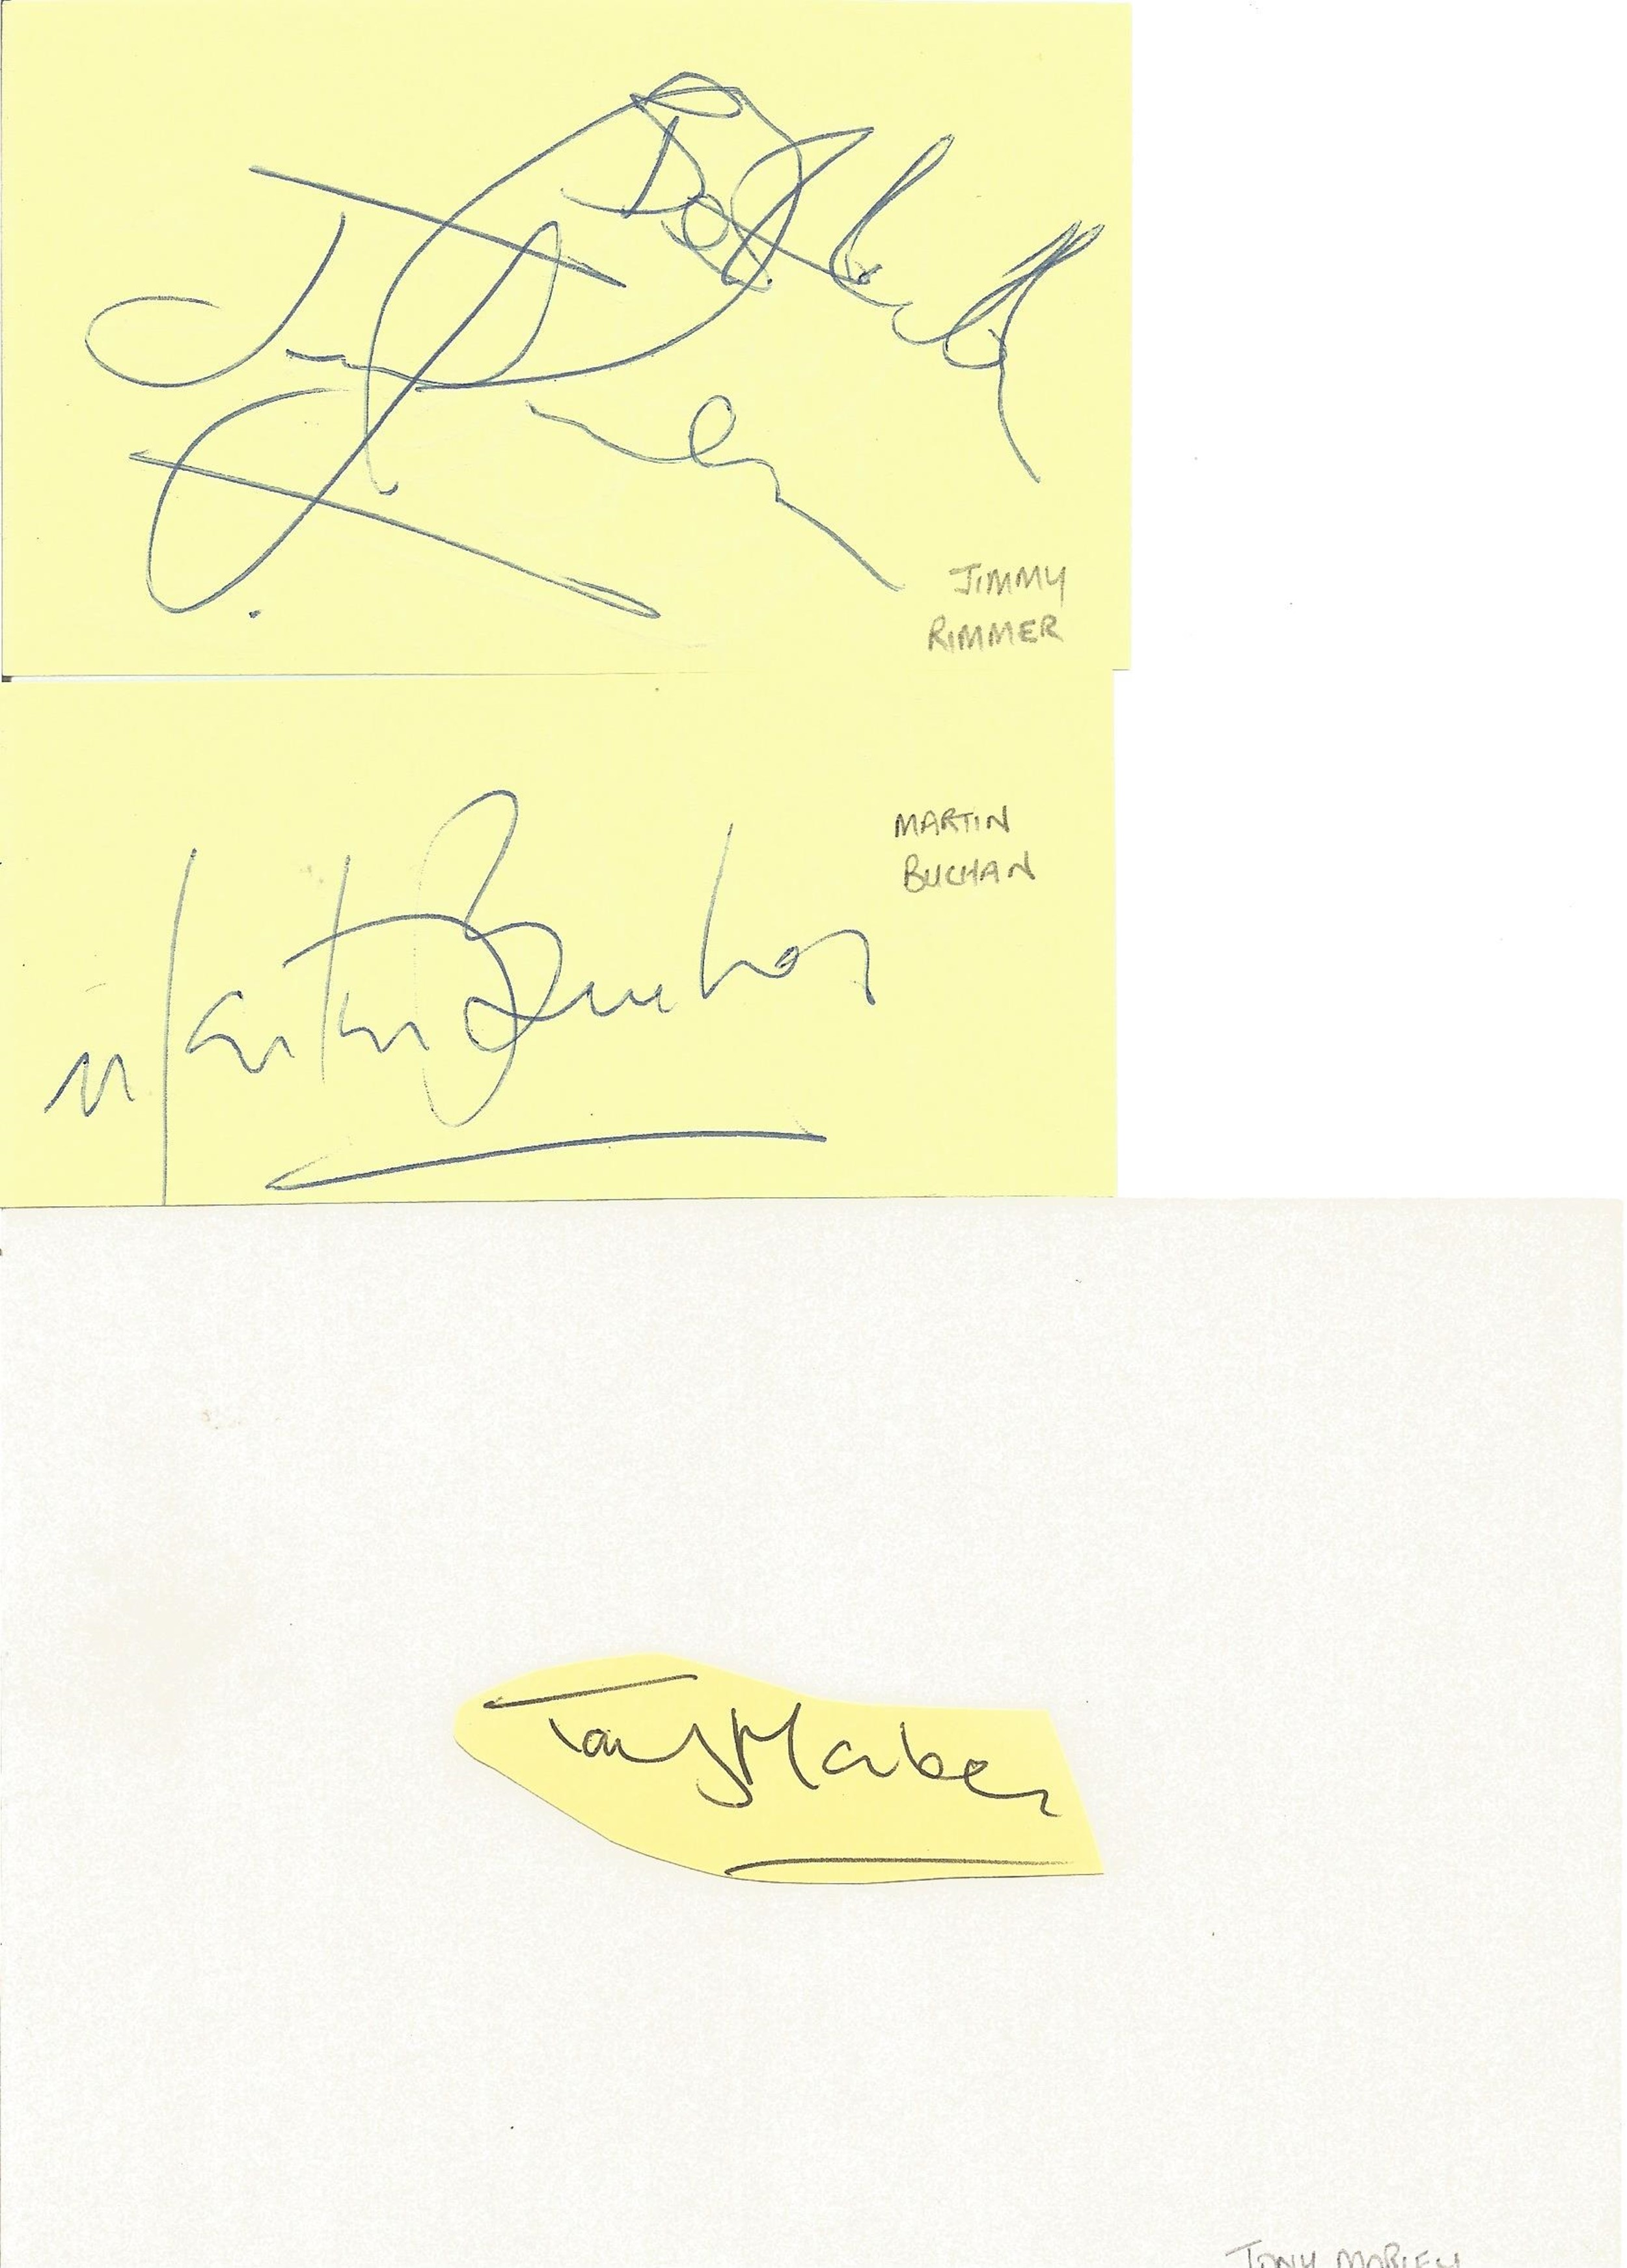 Assorted signature piece collection. 15+ included. Some of names included are Alan Rogers, Tony - Image 5 of 5